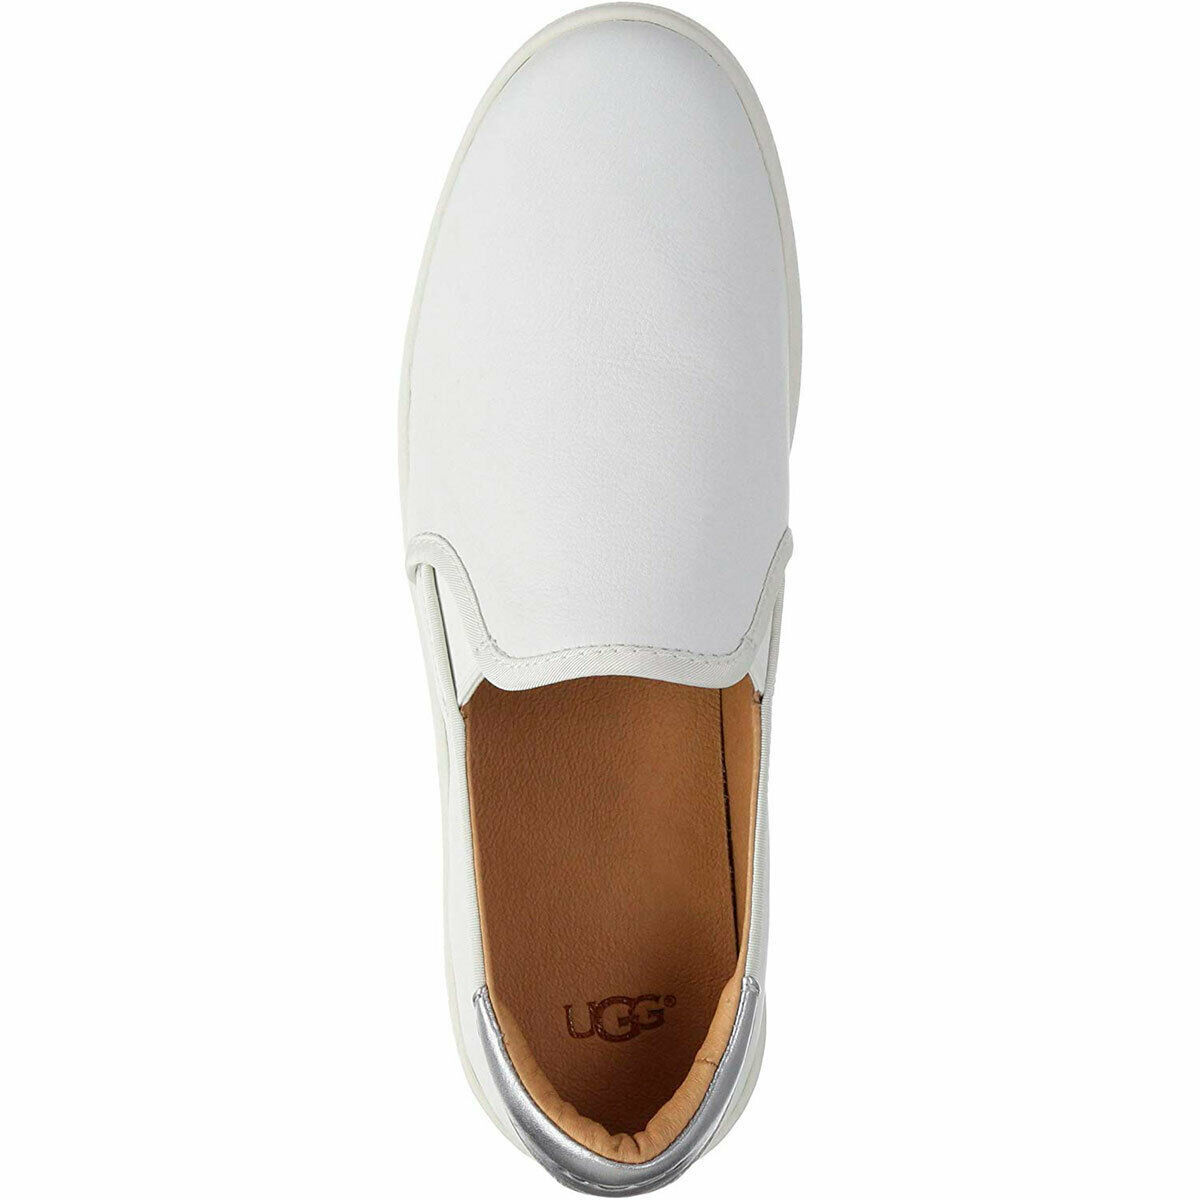 UGG Women's Cas Slip-on Fashion Sneakers White 5.5 M MSRP 100 New image 5